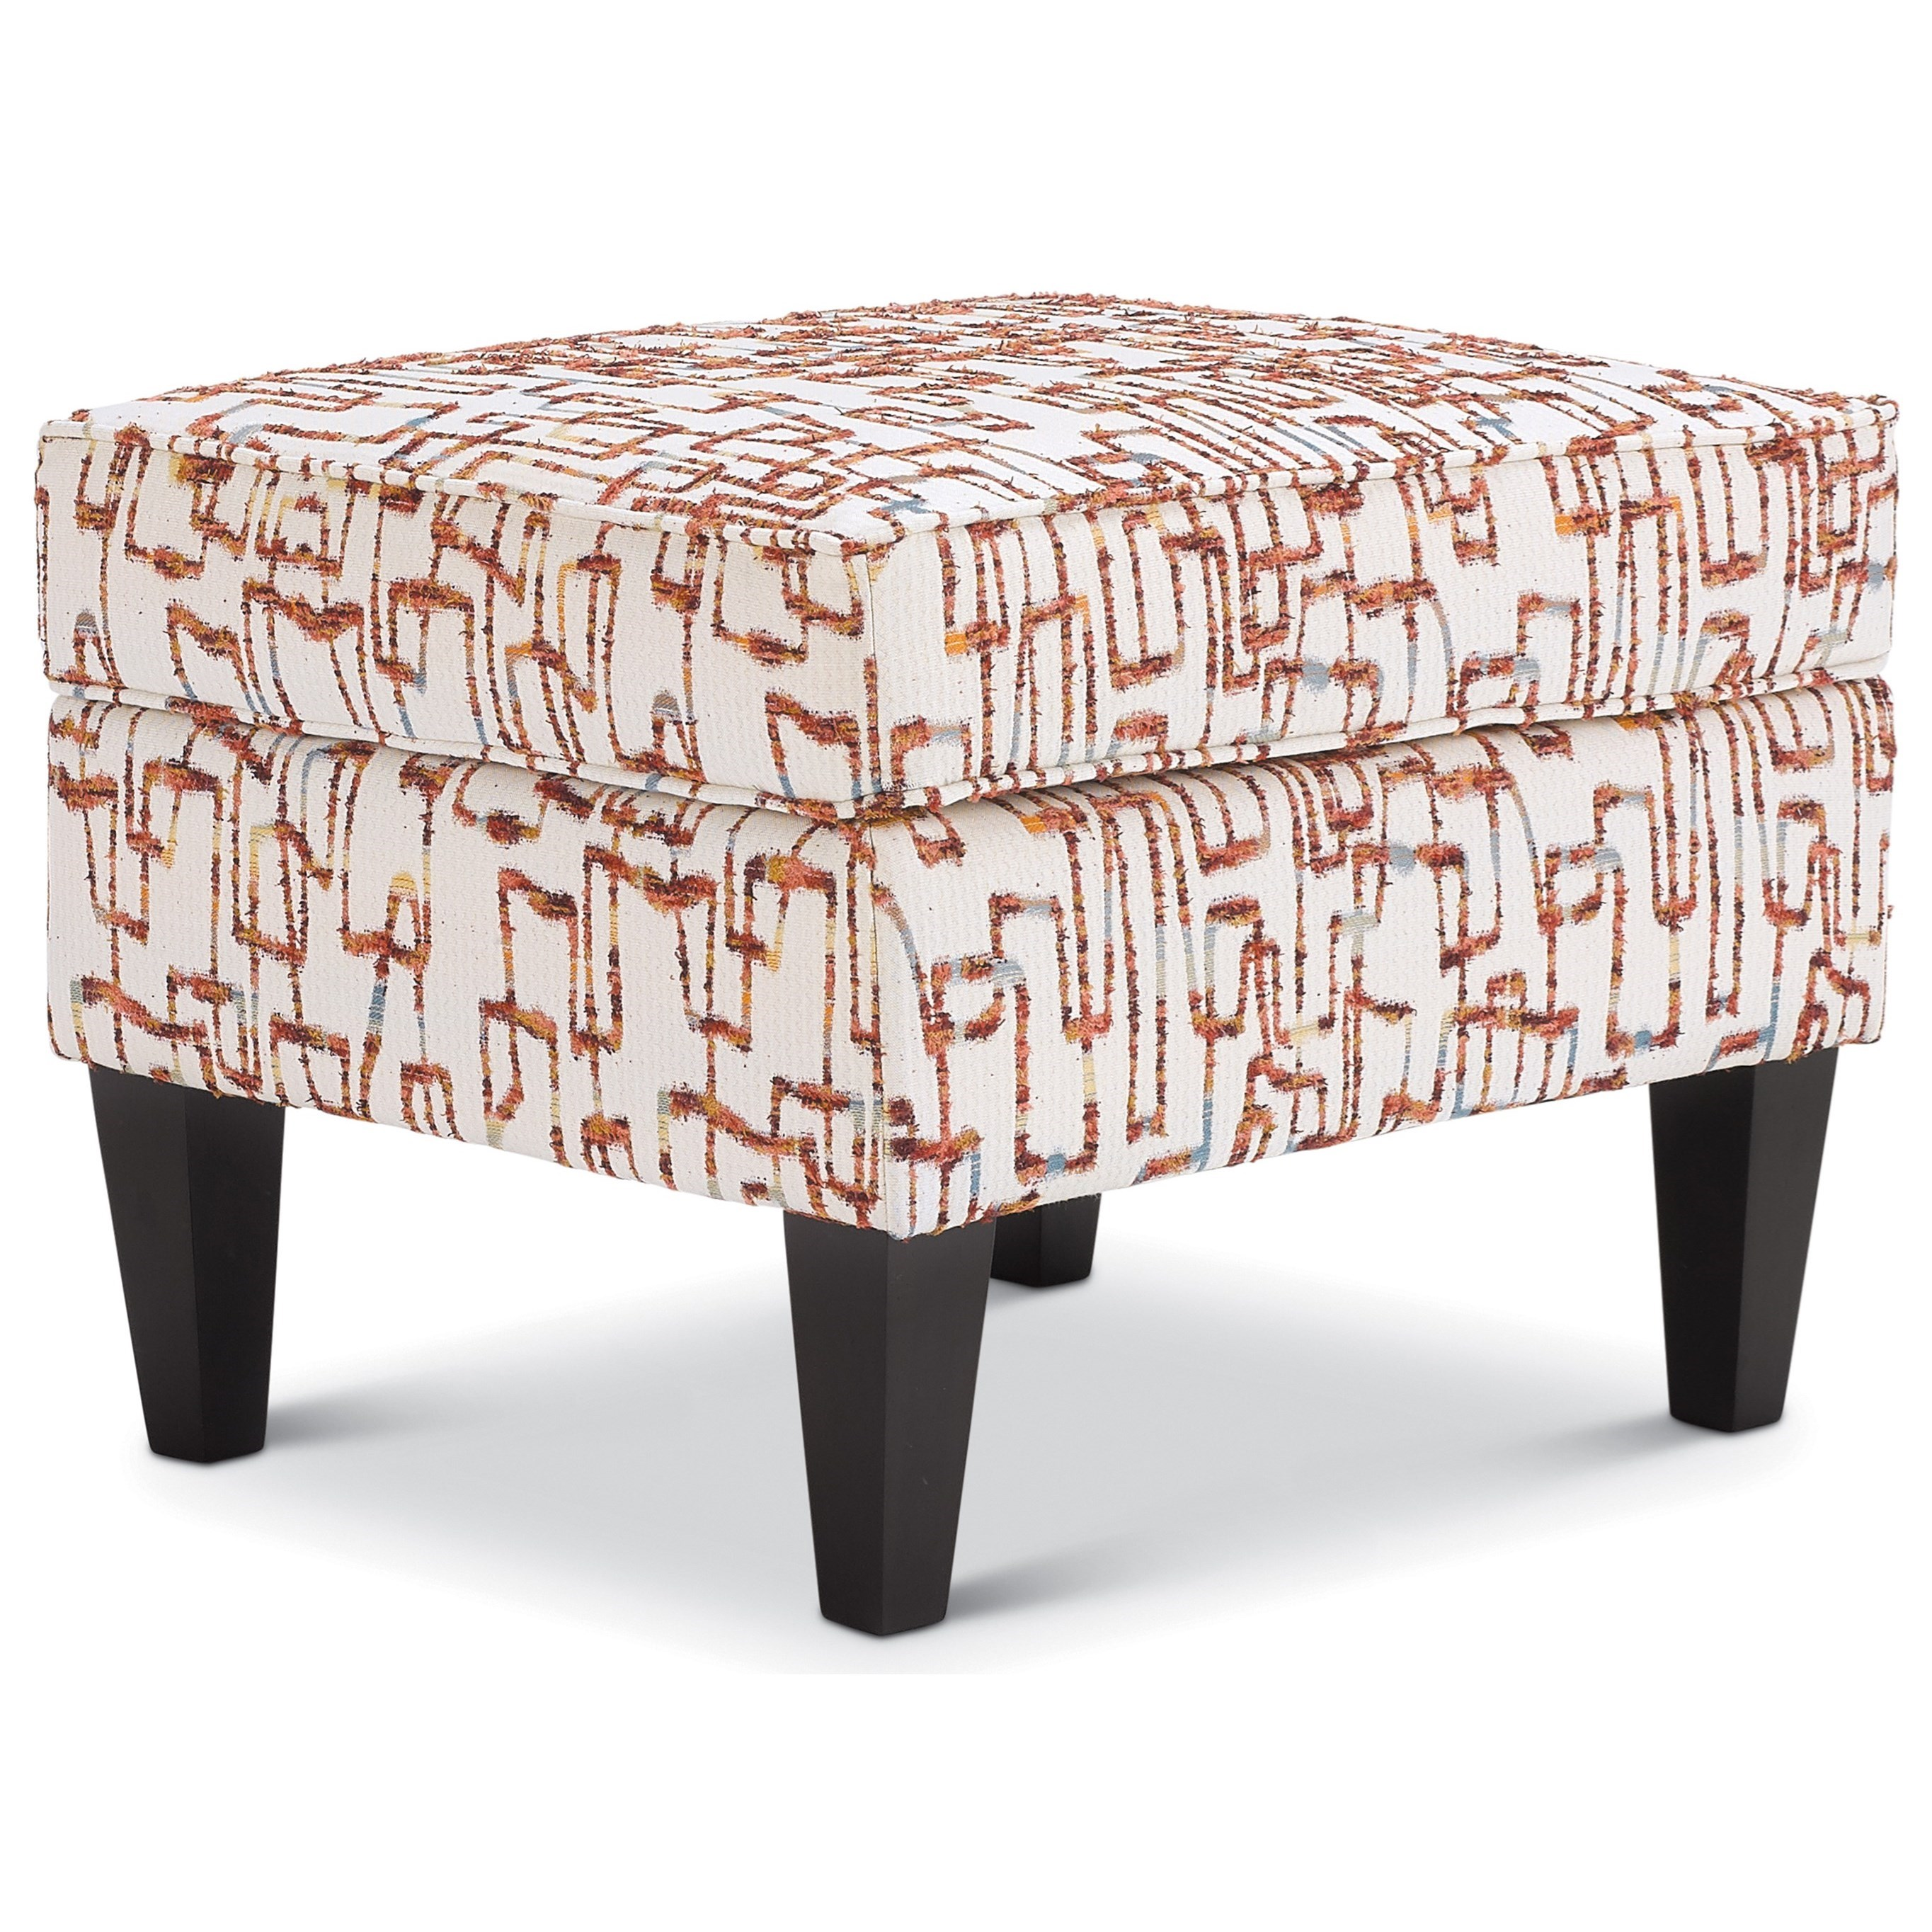 0004 Ottoman by Best Home Furnishings at Esprit Decor Home Furnishings